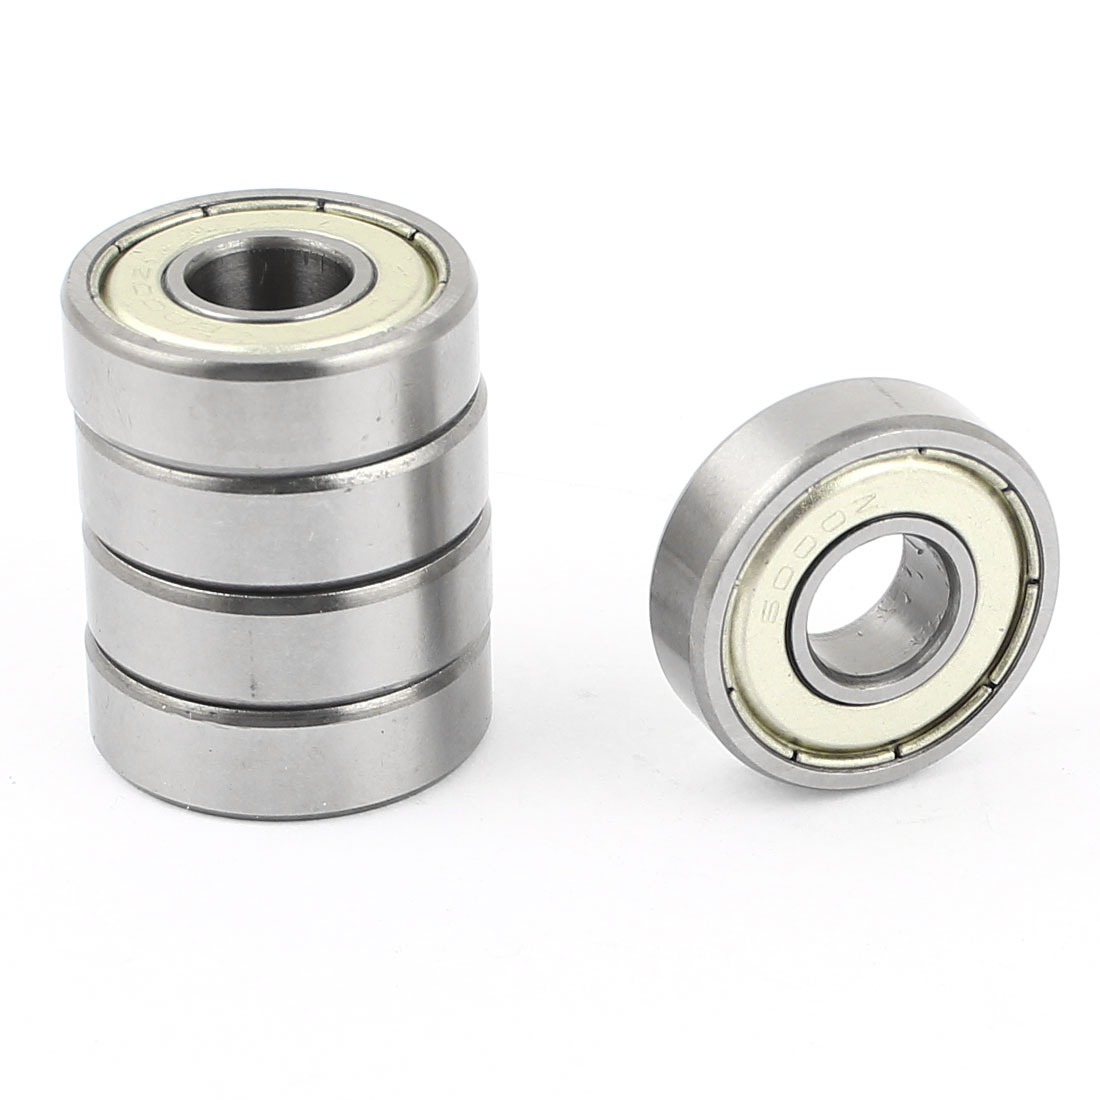 5 Pcs 10mm x 26mm x 8mm Double Metal Shielded Deep Groove Ball Bearings 20009